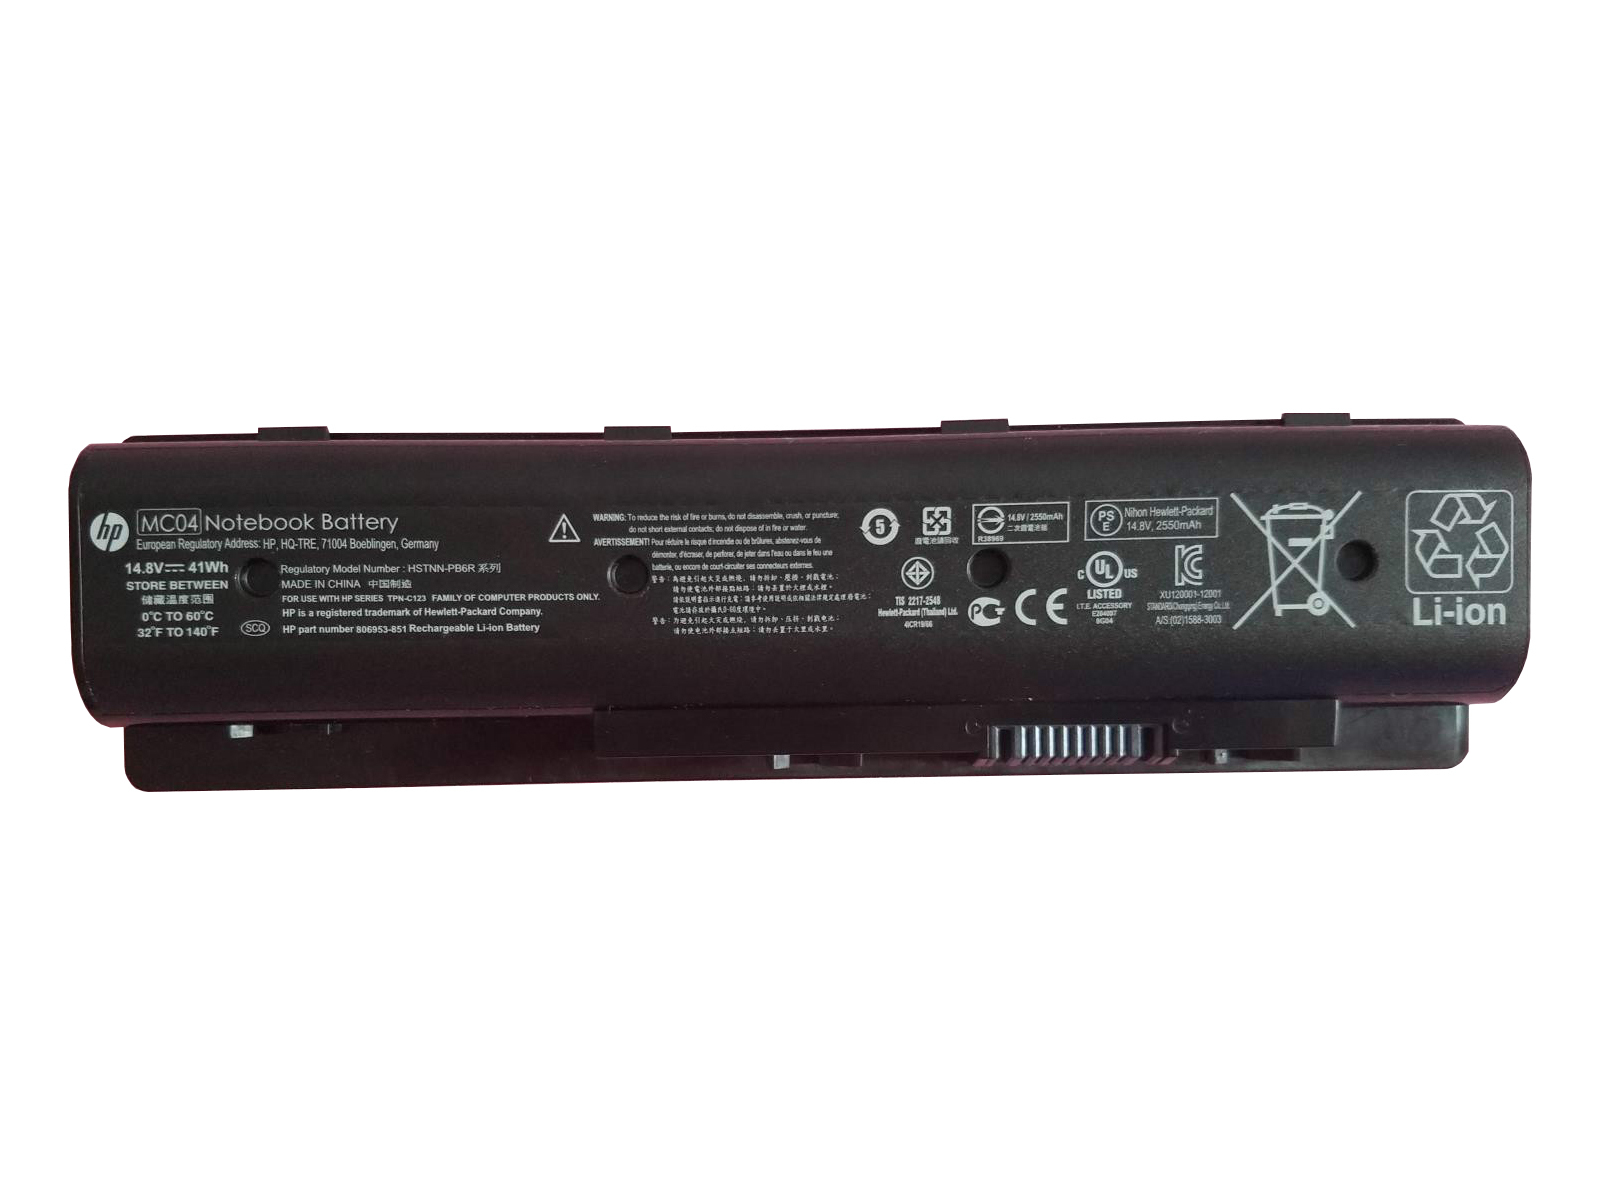 807231-001 MC04 HSTNN-PB6R 806953-851 TPN-C123 HP Envy 17-N171NZ P0H29EA Battery - $49.99